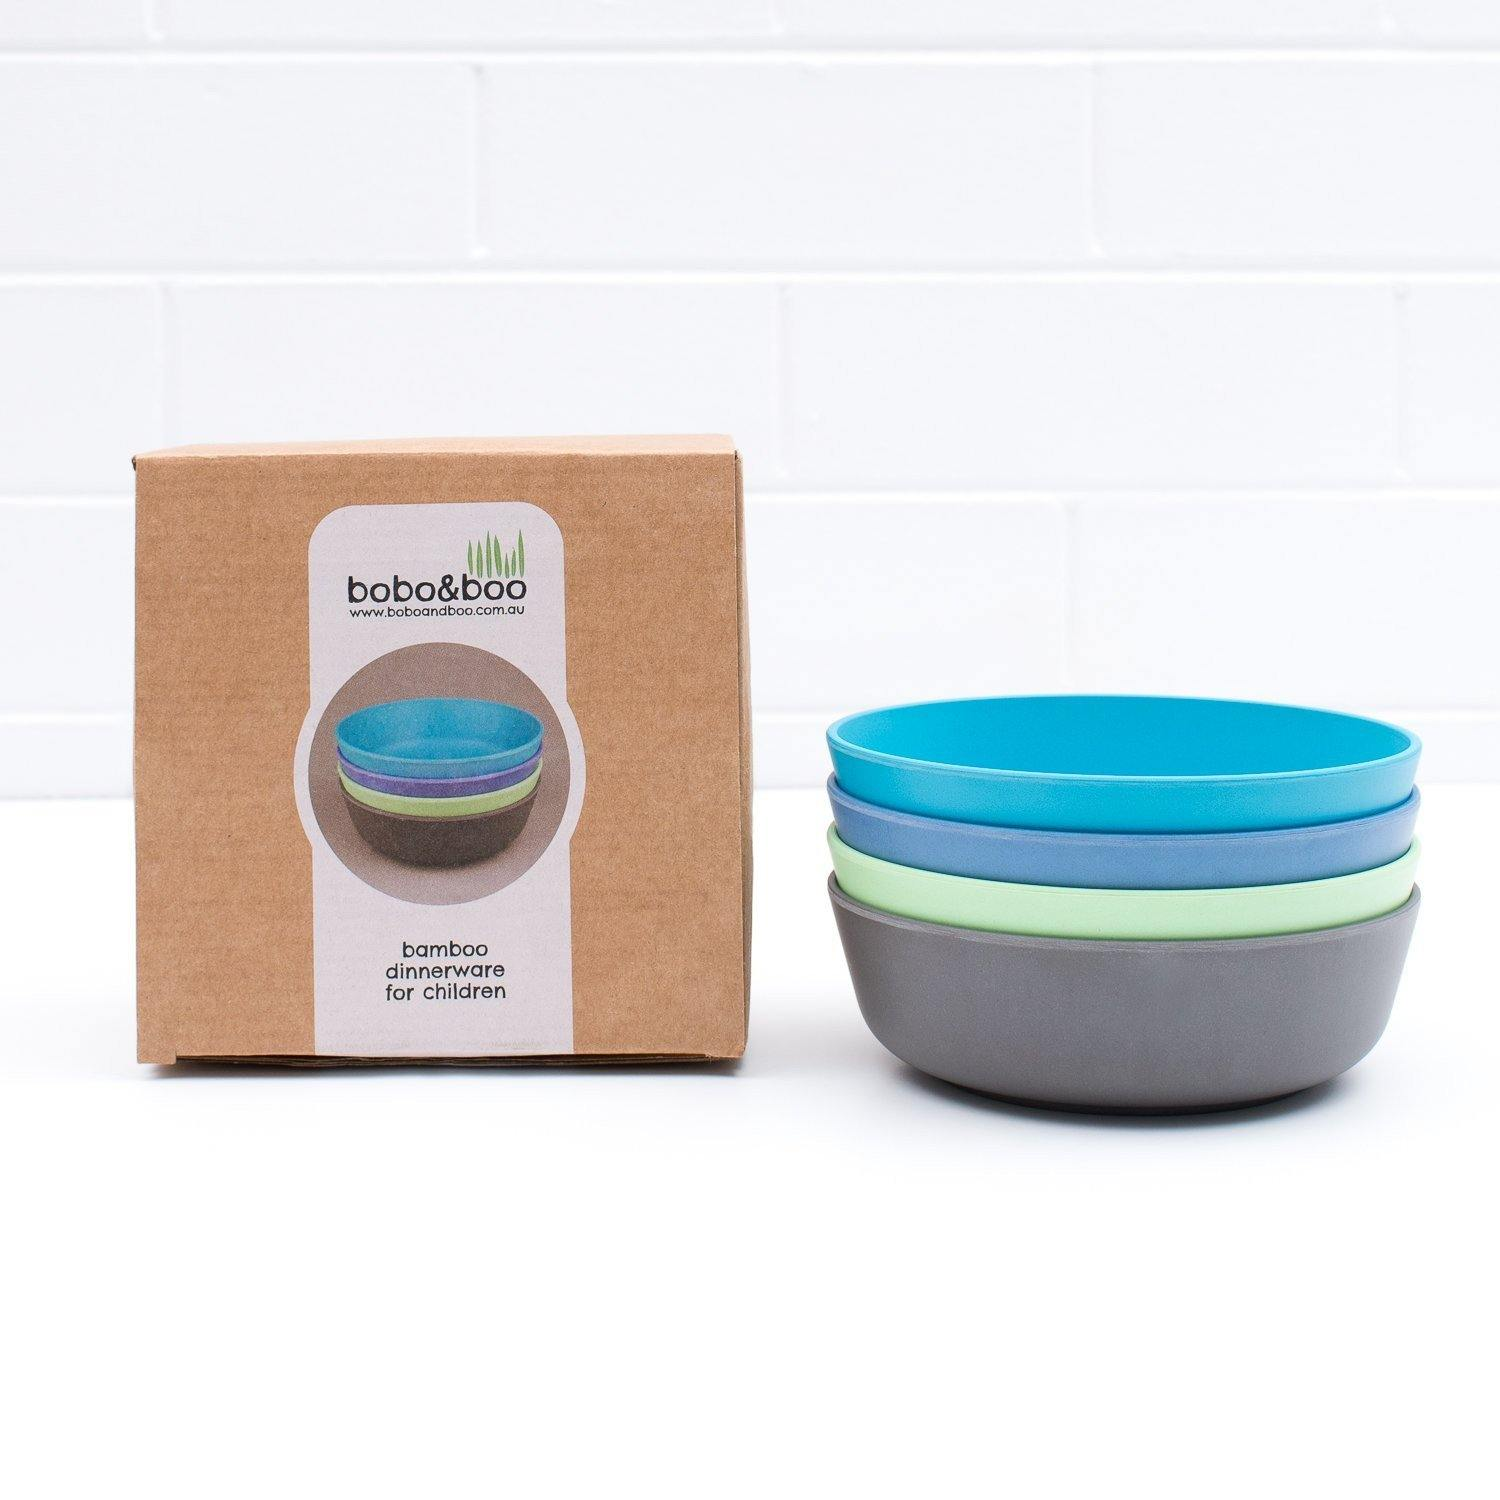 Bobo&boo Non-Toxic, BPA-Free set of 4 Bamboo Toddlers & Kids Bowls for Cereal & Soup - Coastal - indieprojectstore